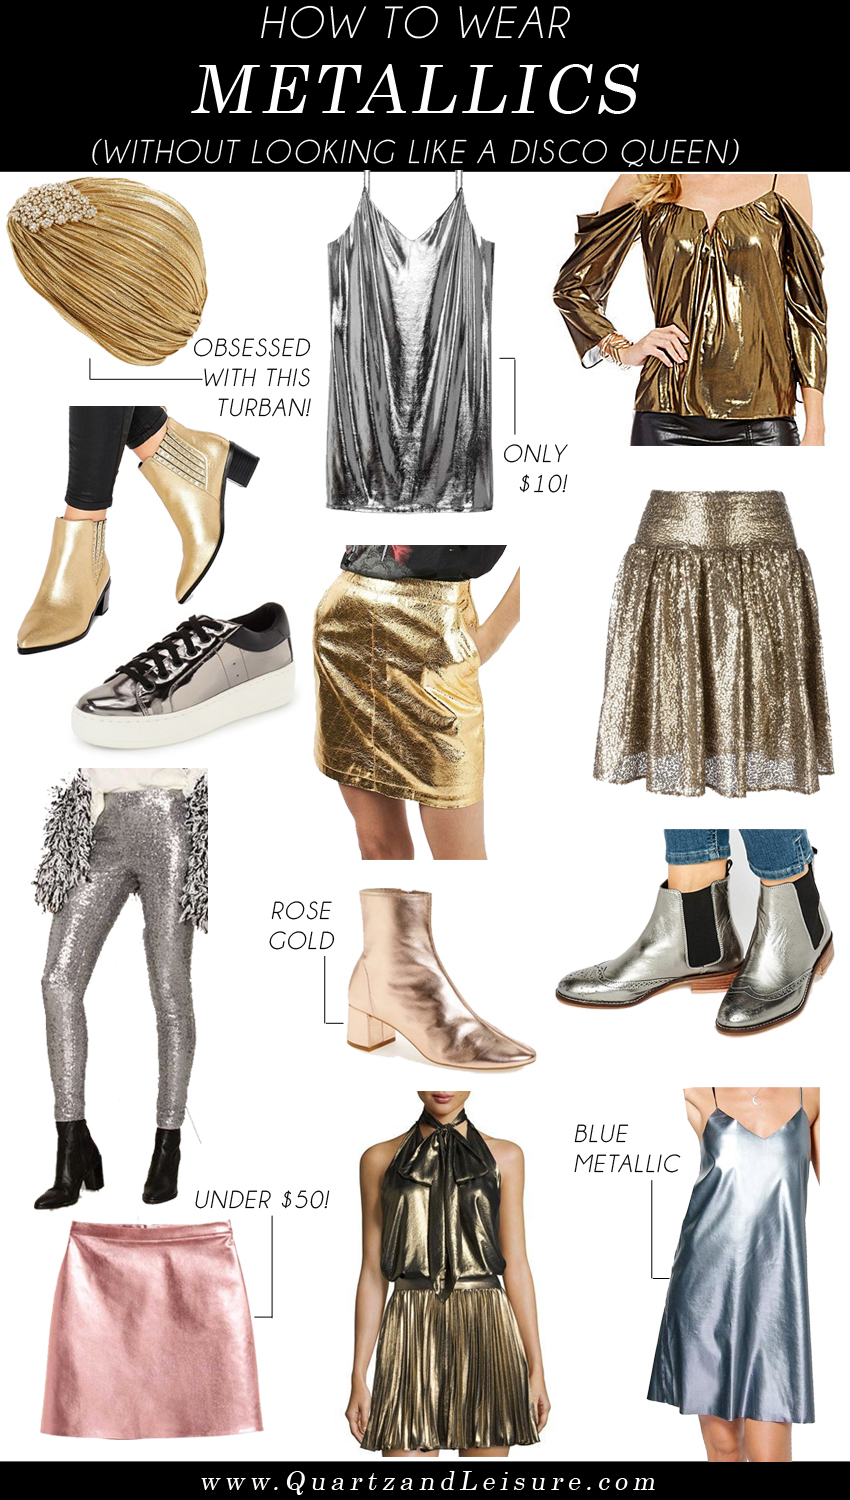 How to Wear Metallic - Quartz & Leisure